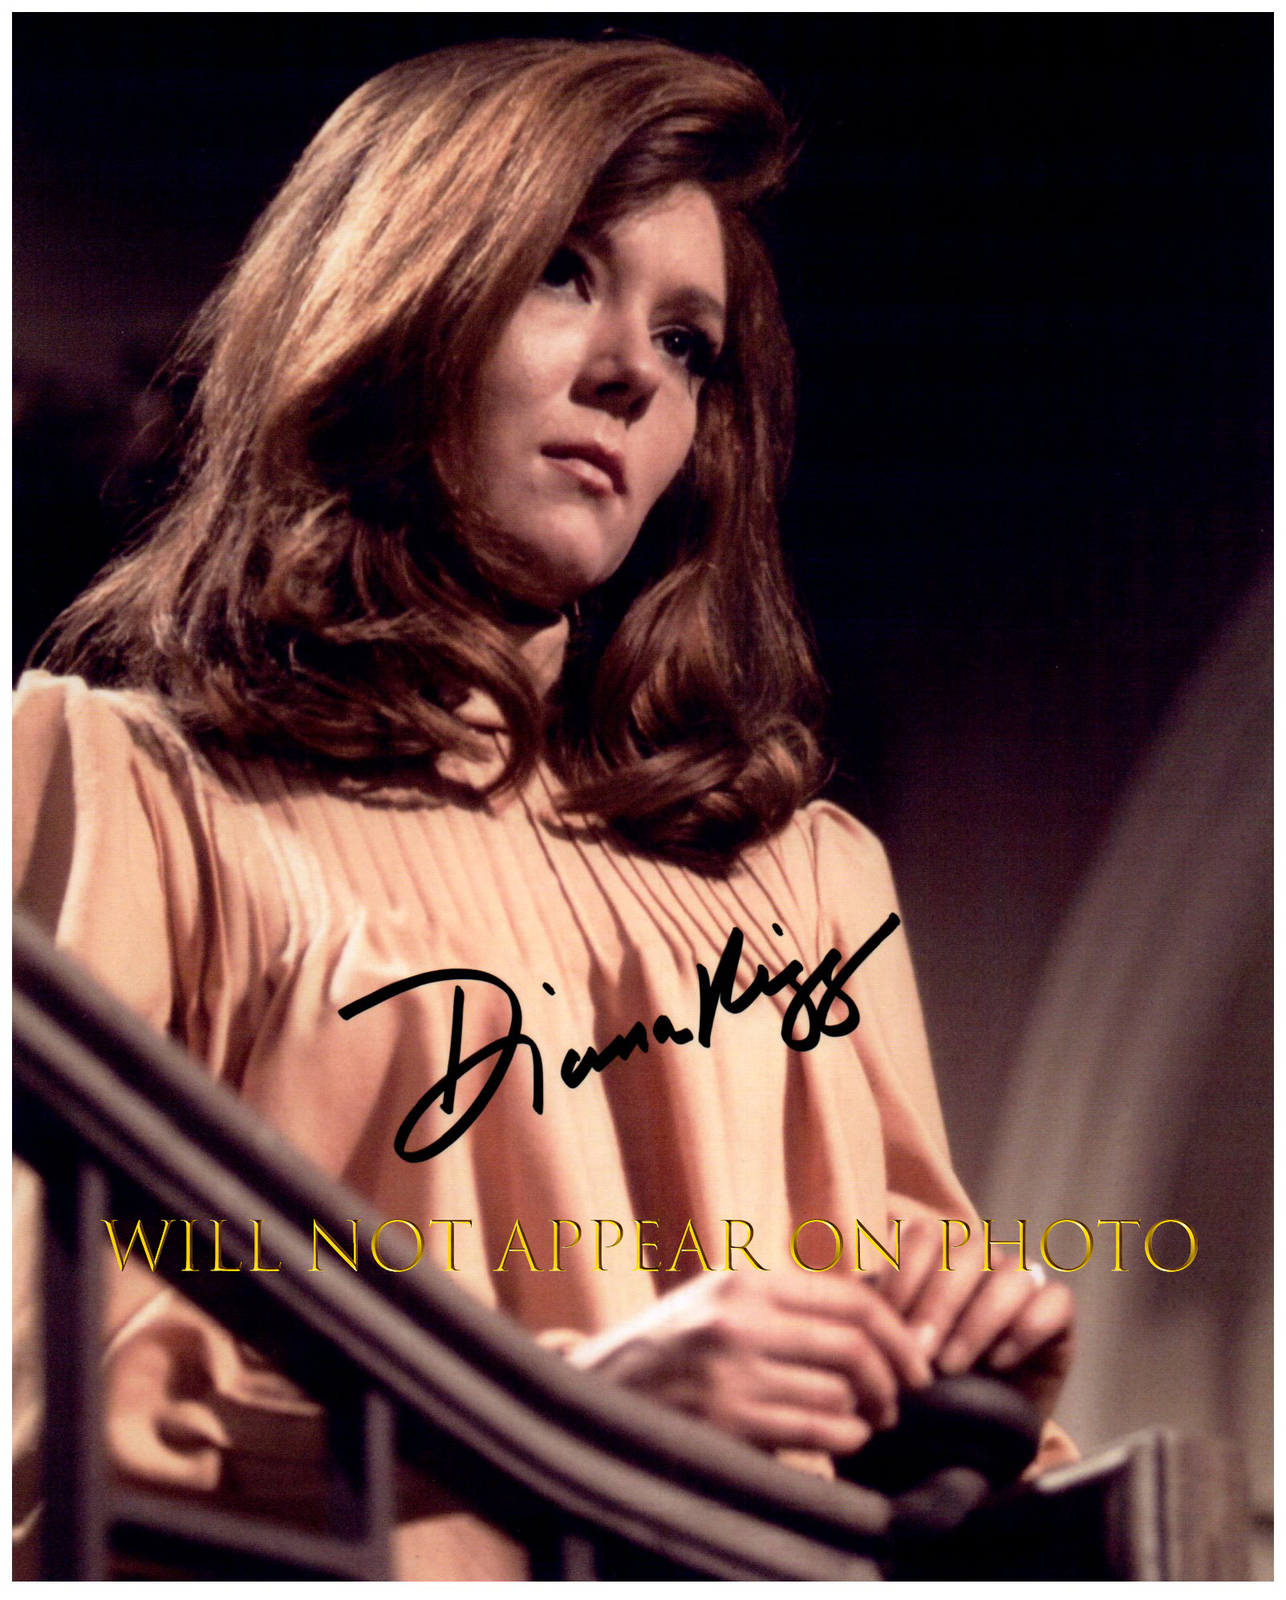 Primary image for DIANA RIGG Signed Autographed 8X10 Photo w/ Certificate of Authenticity 2800